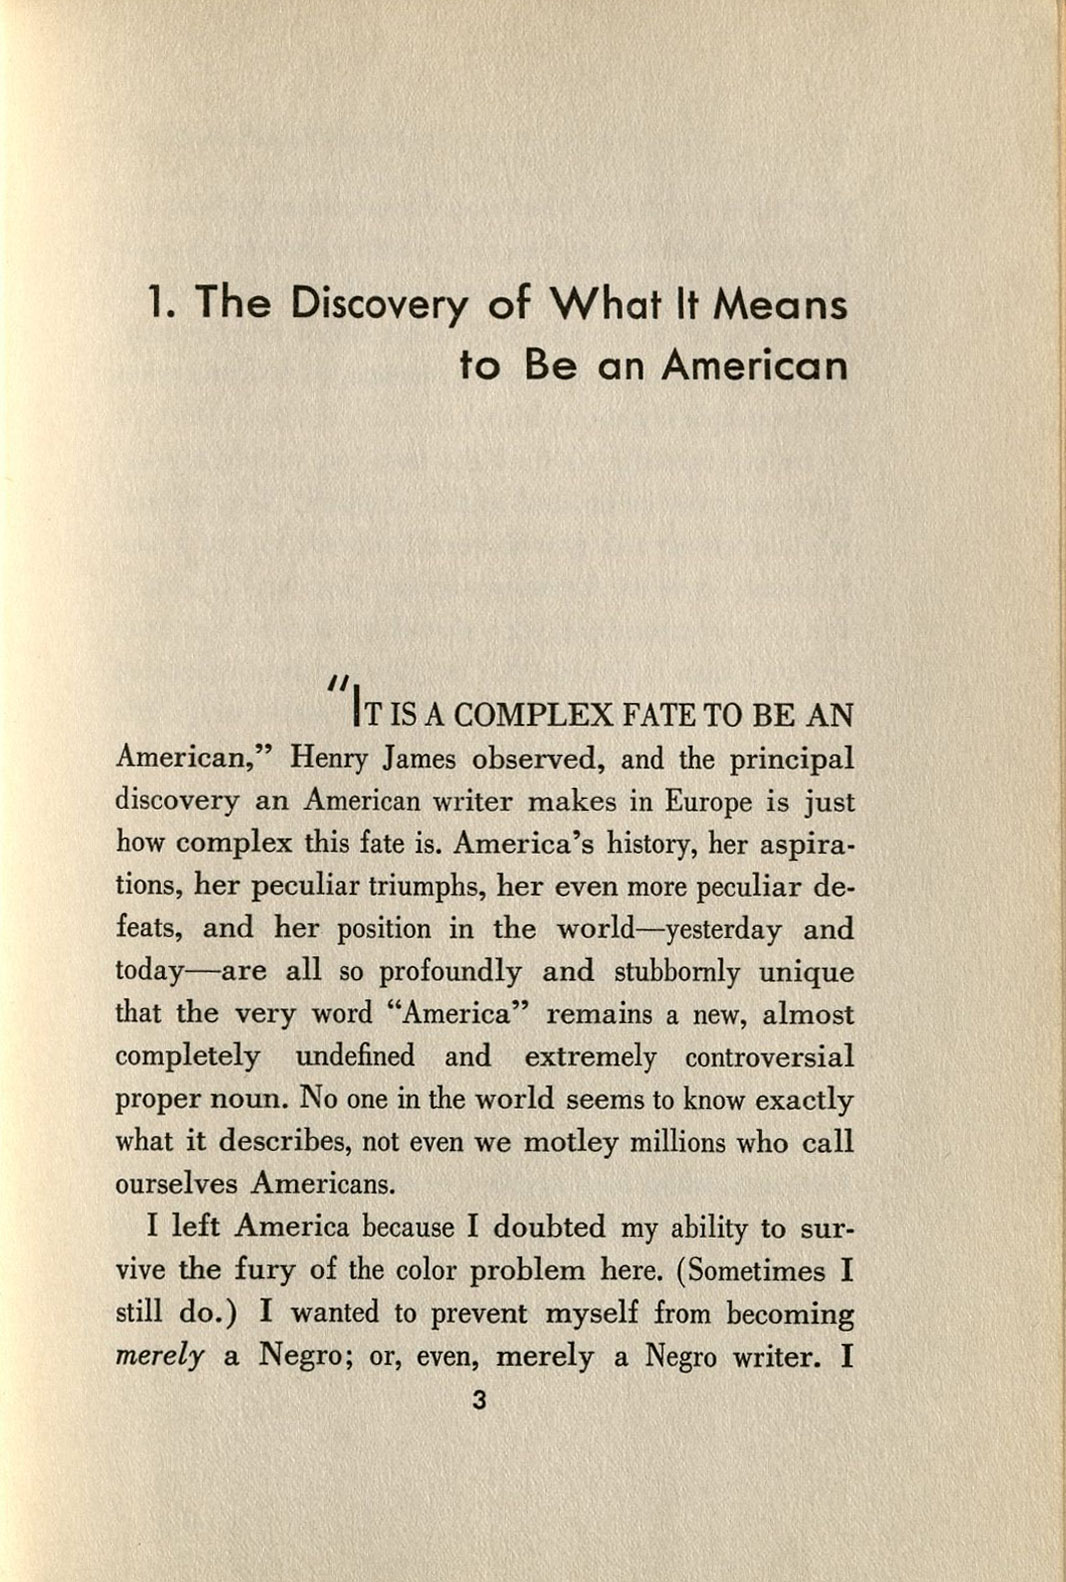 the works of james baldwin oviatt library first page of essay the discovery of what it means to be an american